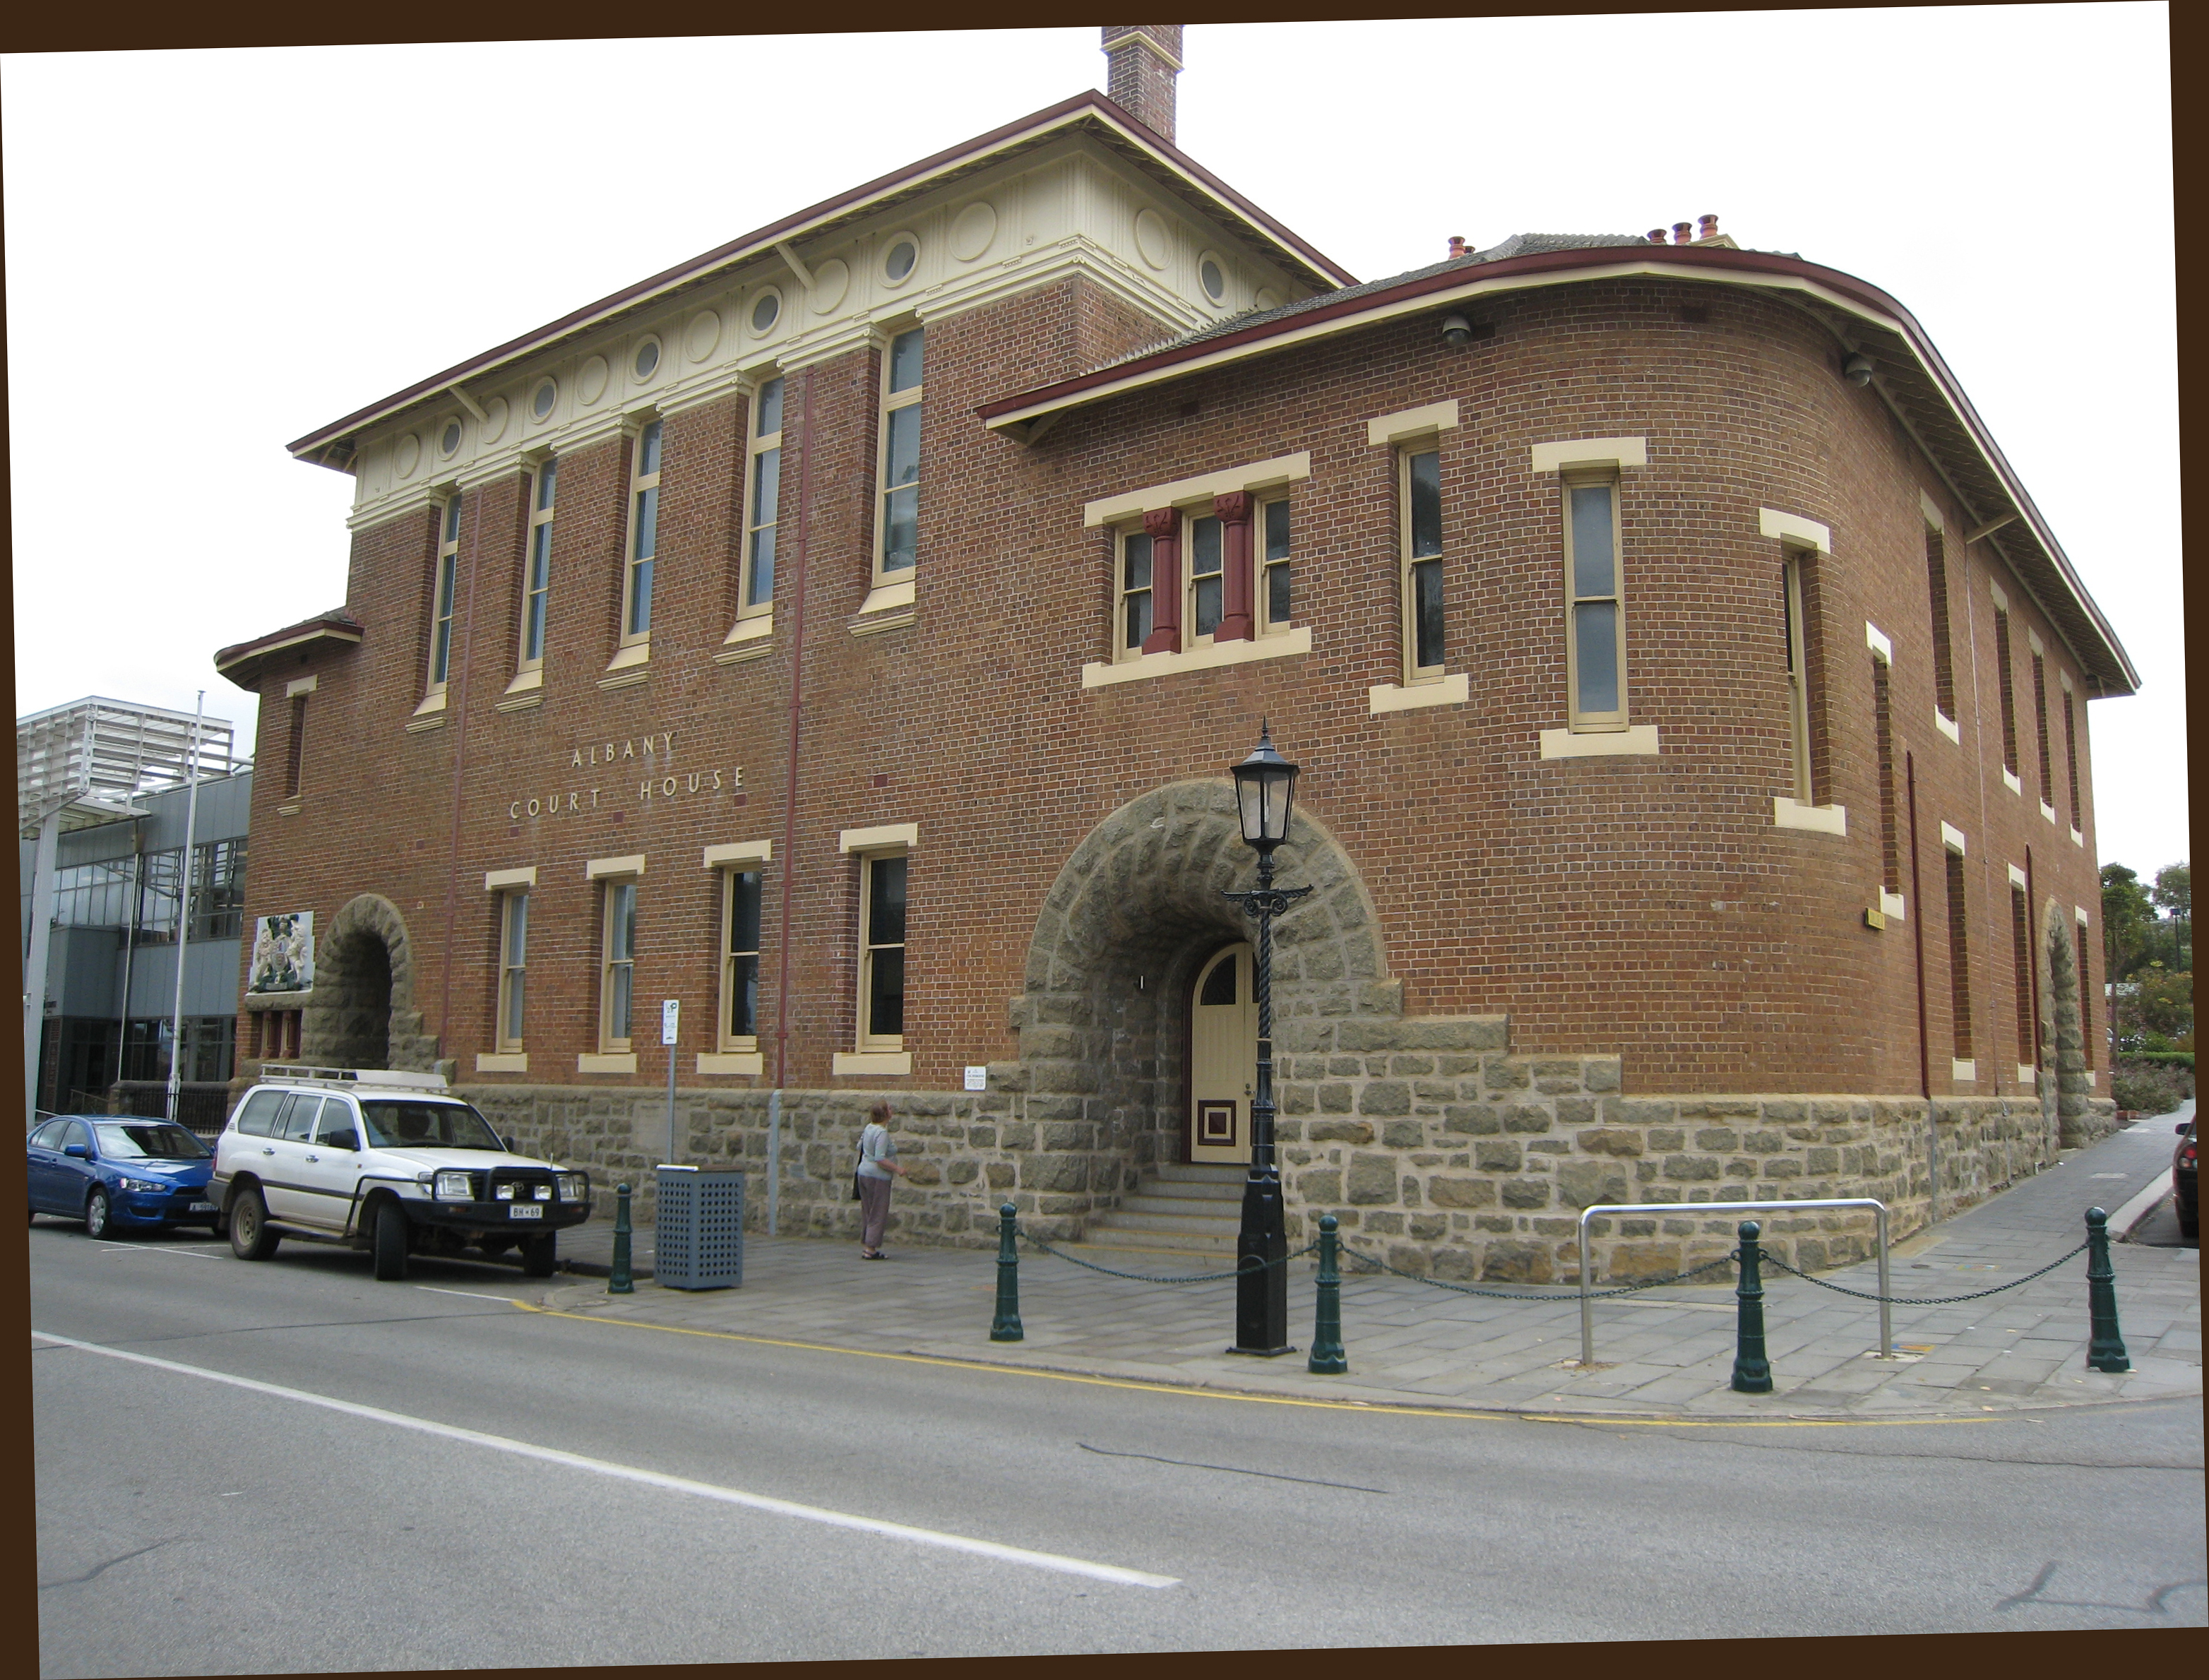 Albany Court House